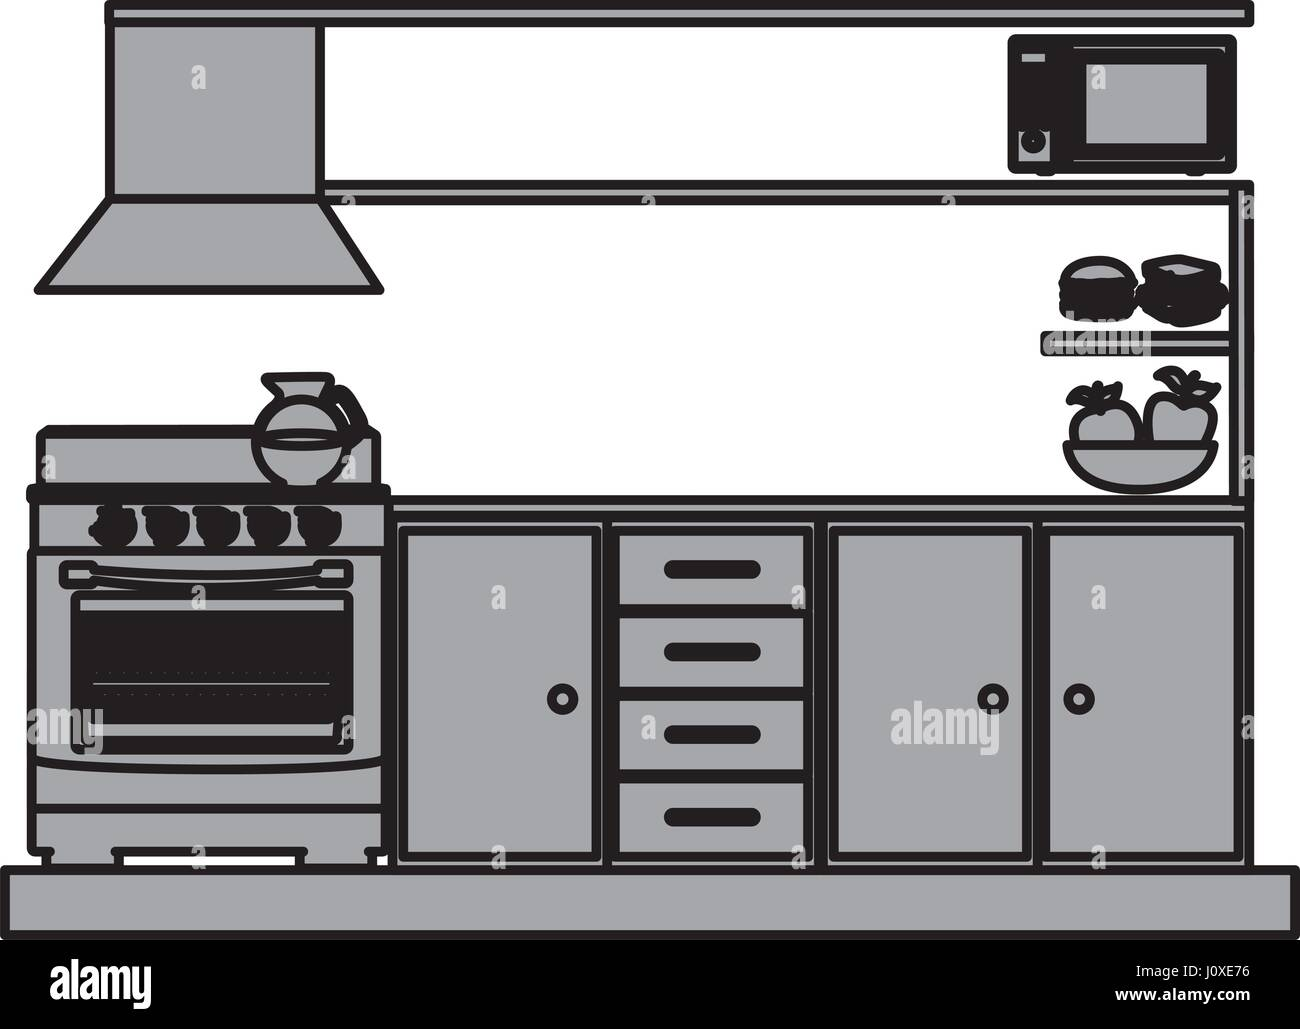 Grayscale Silhouette Of Lower Kitchen Cabinets With Stove And Oven